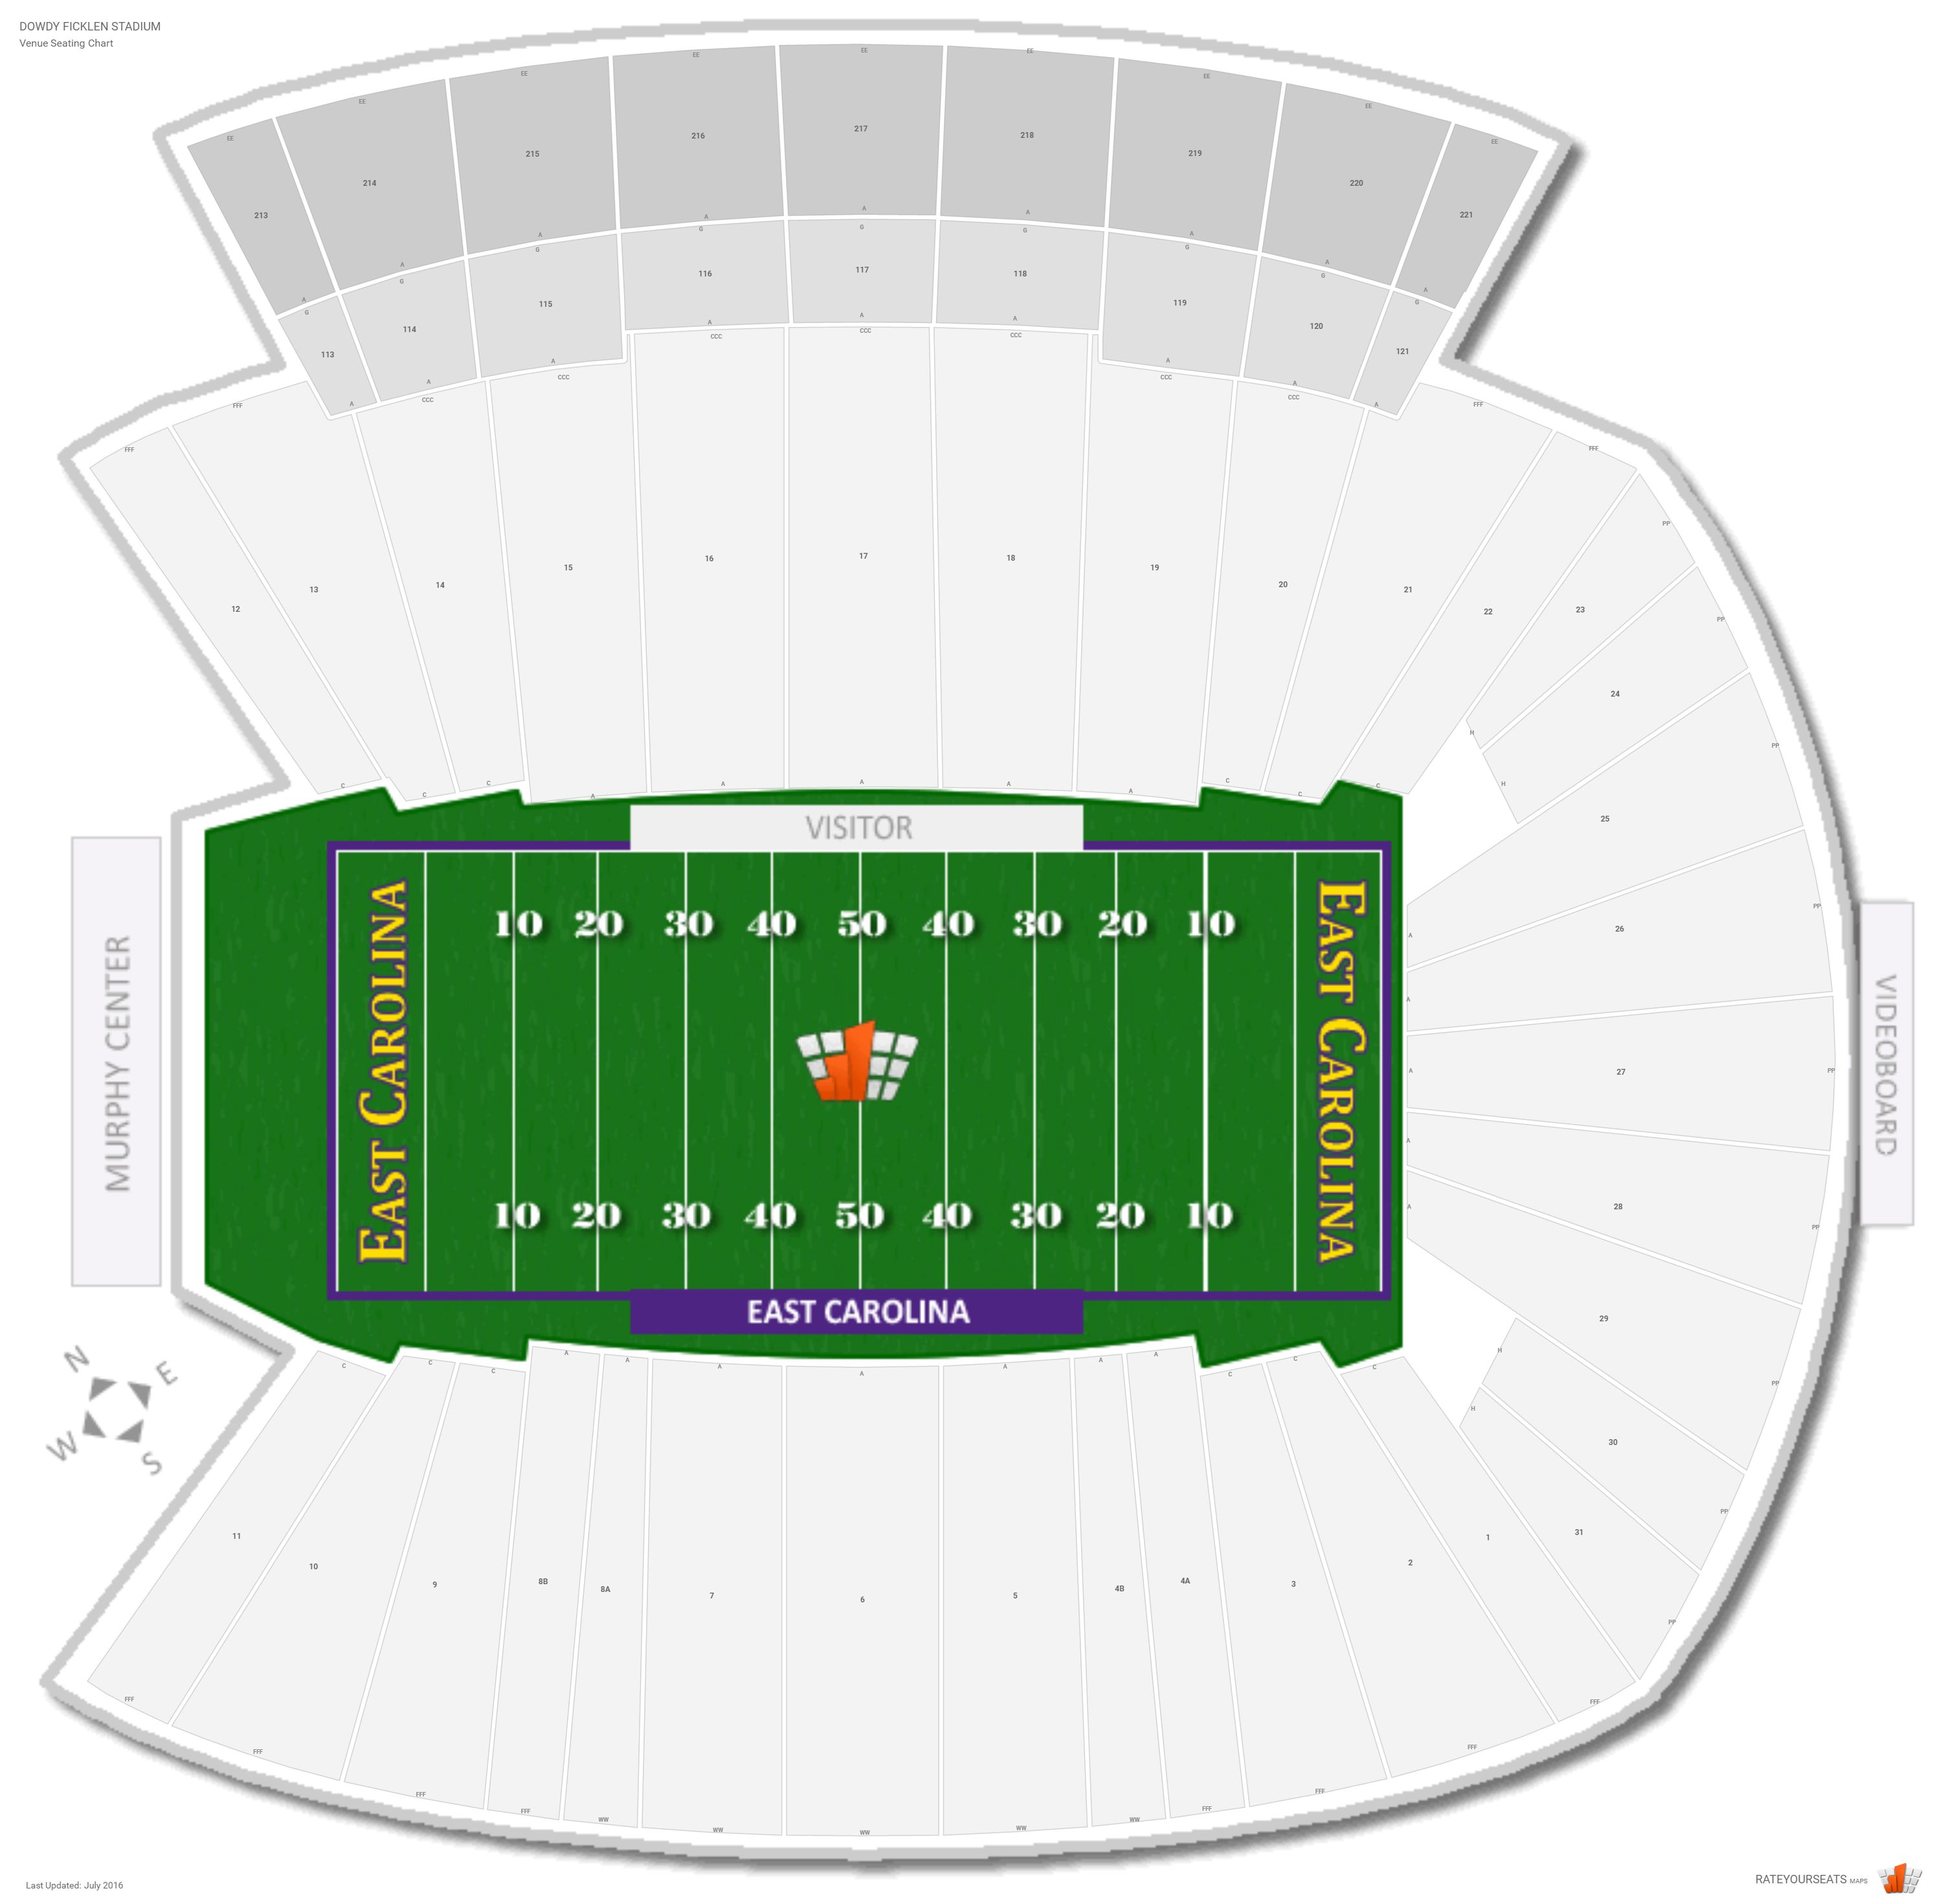 Dowdy Ficklen Stadium Seating Chart with Row Numbers